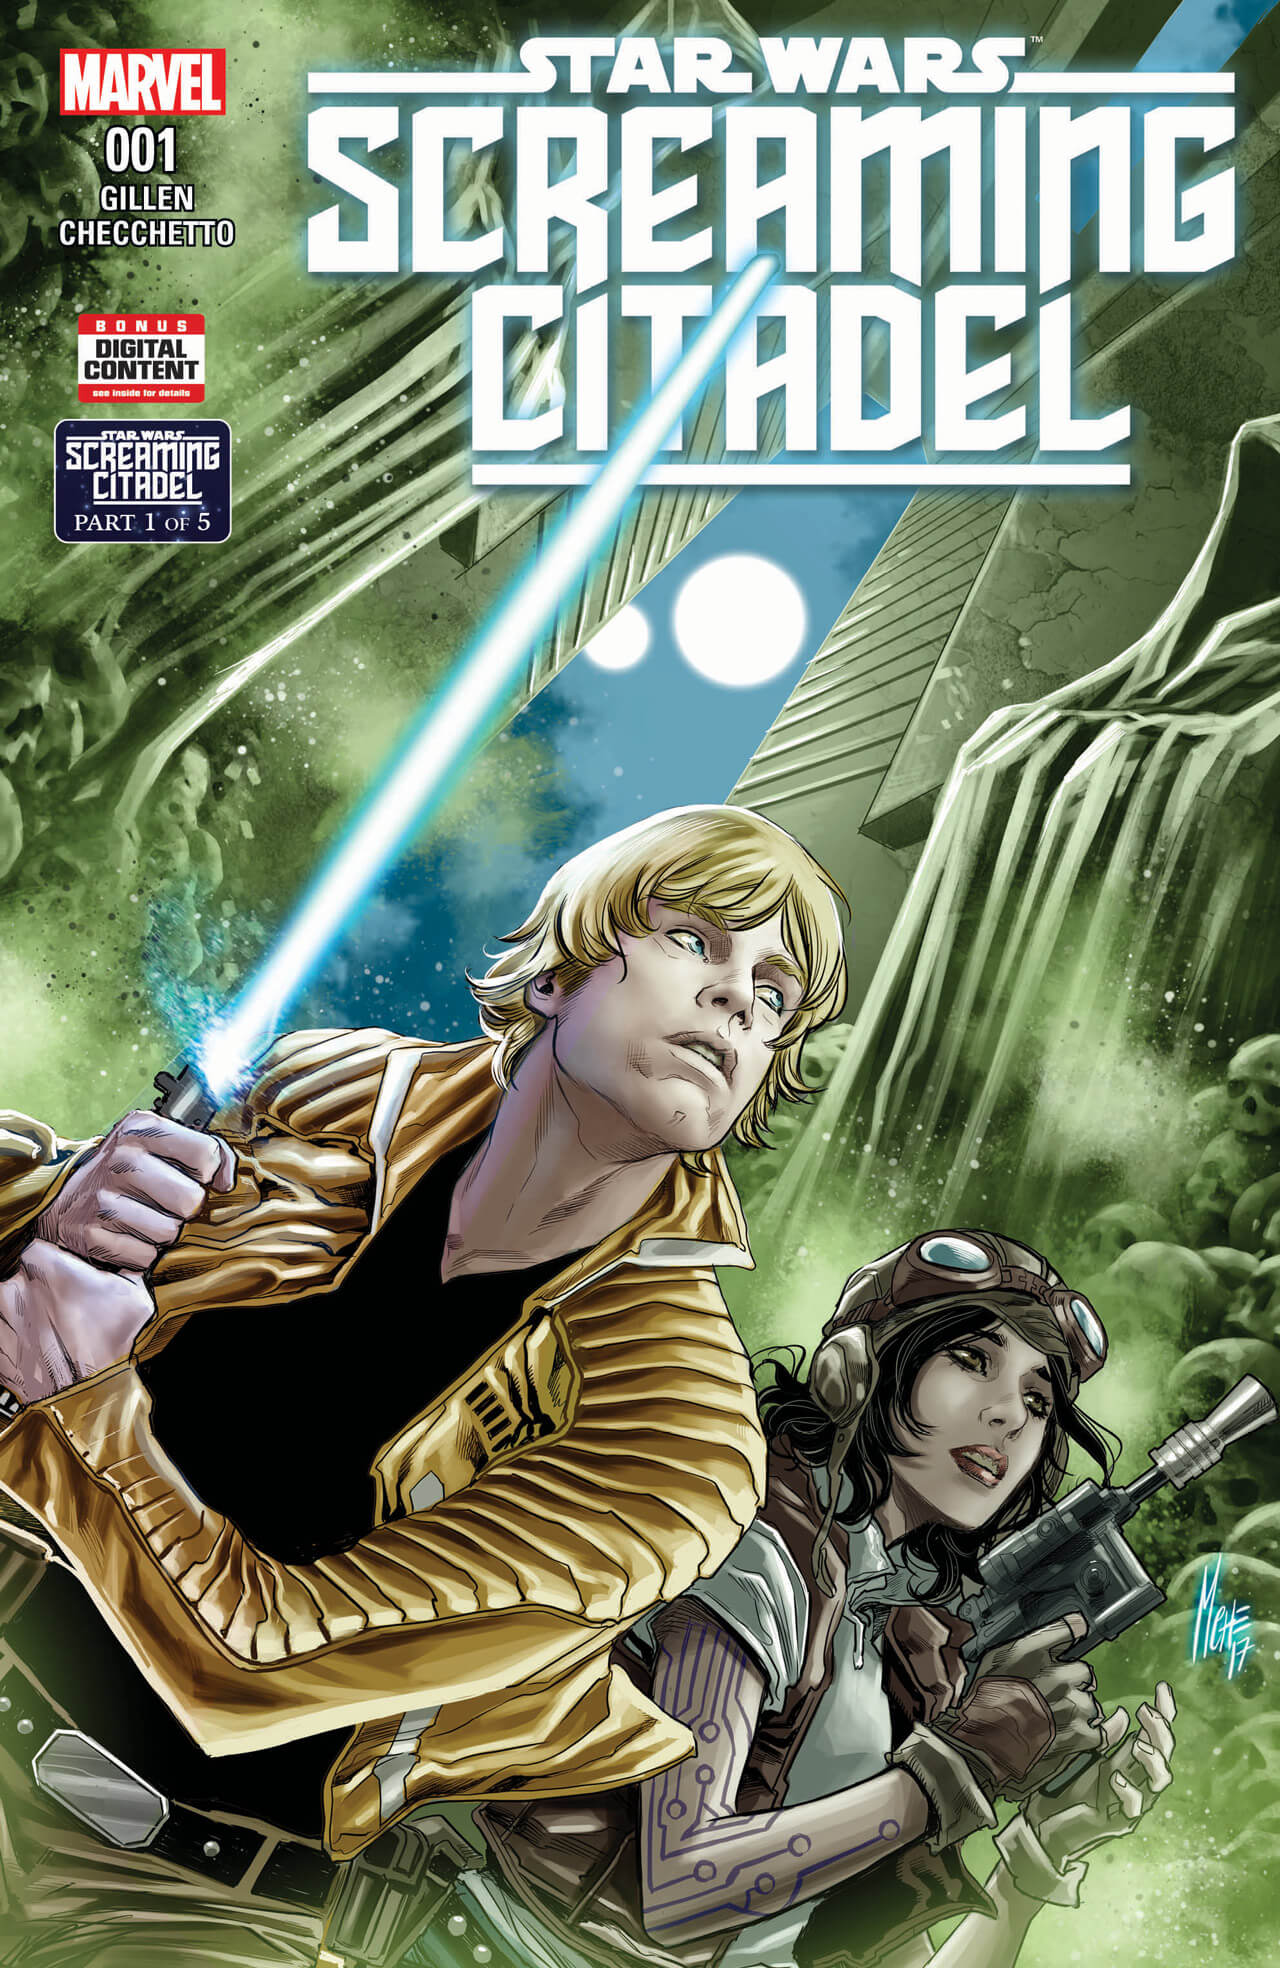 star wars screaming citadel 1 1 - Star Wars: The Screaming Citadel Horror Comic Coming This Year